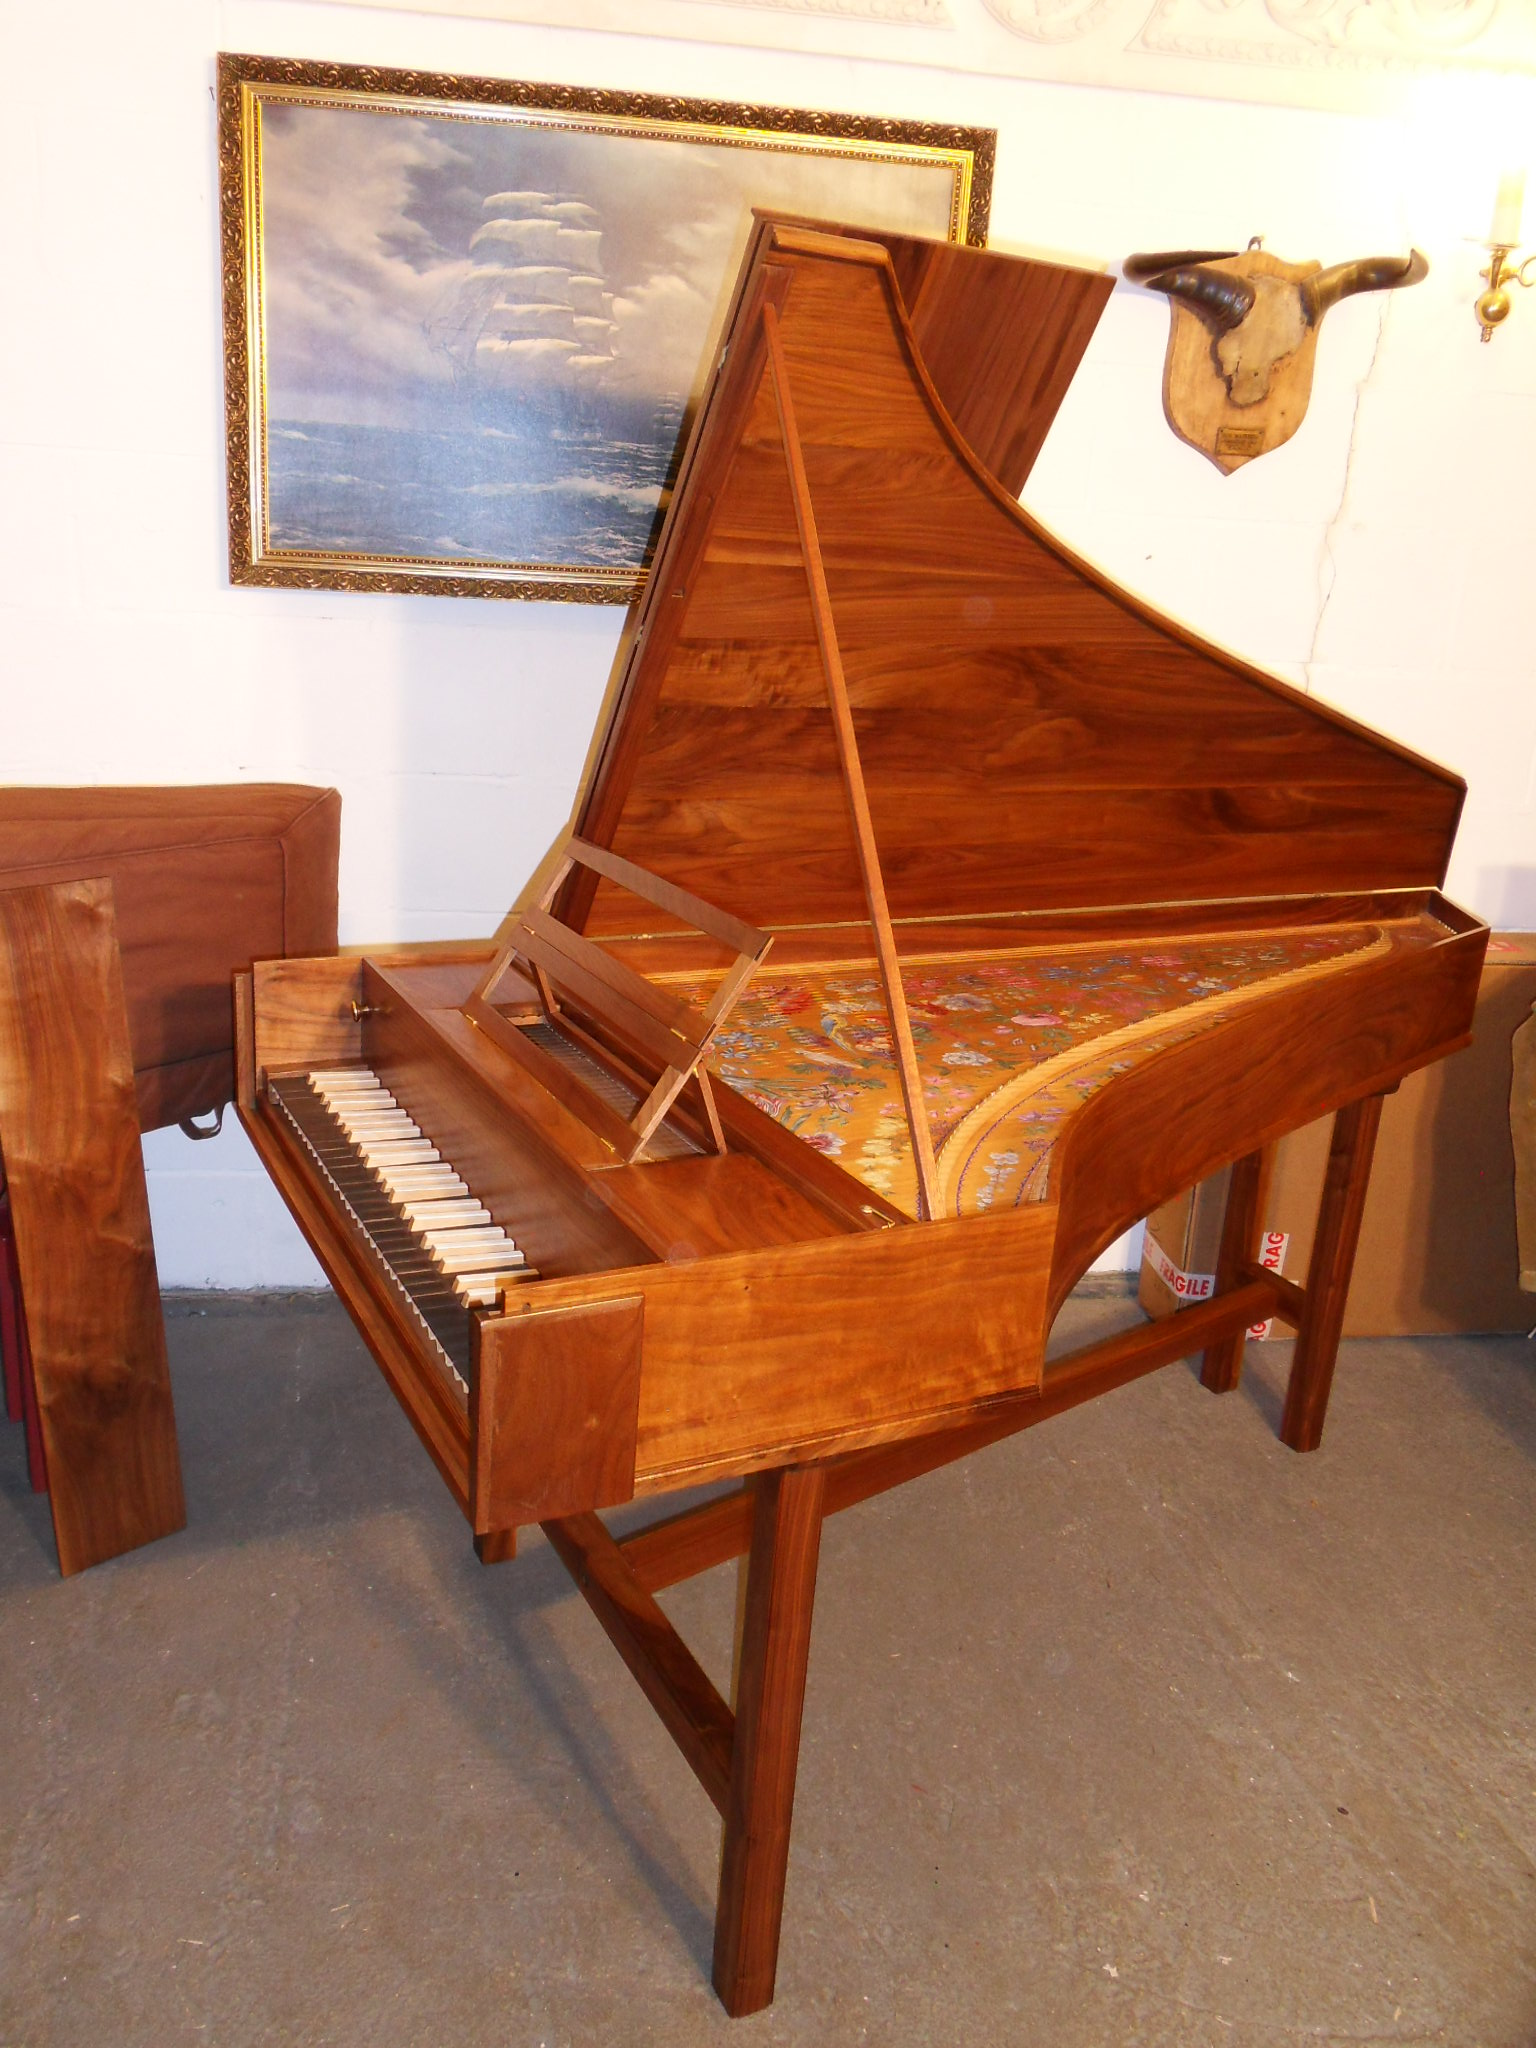 Harpsichords